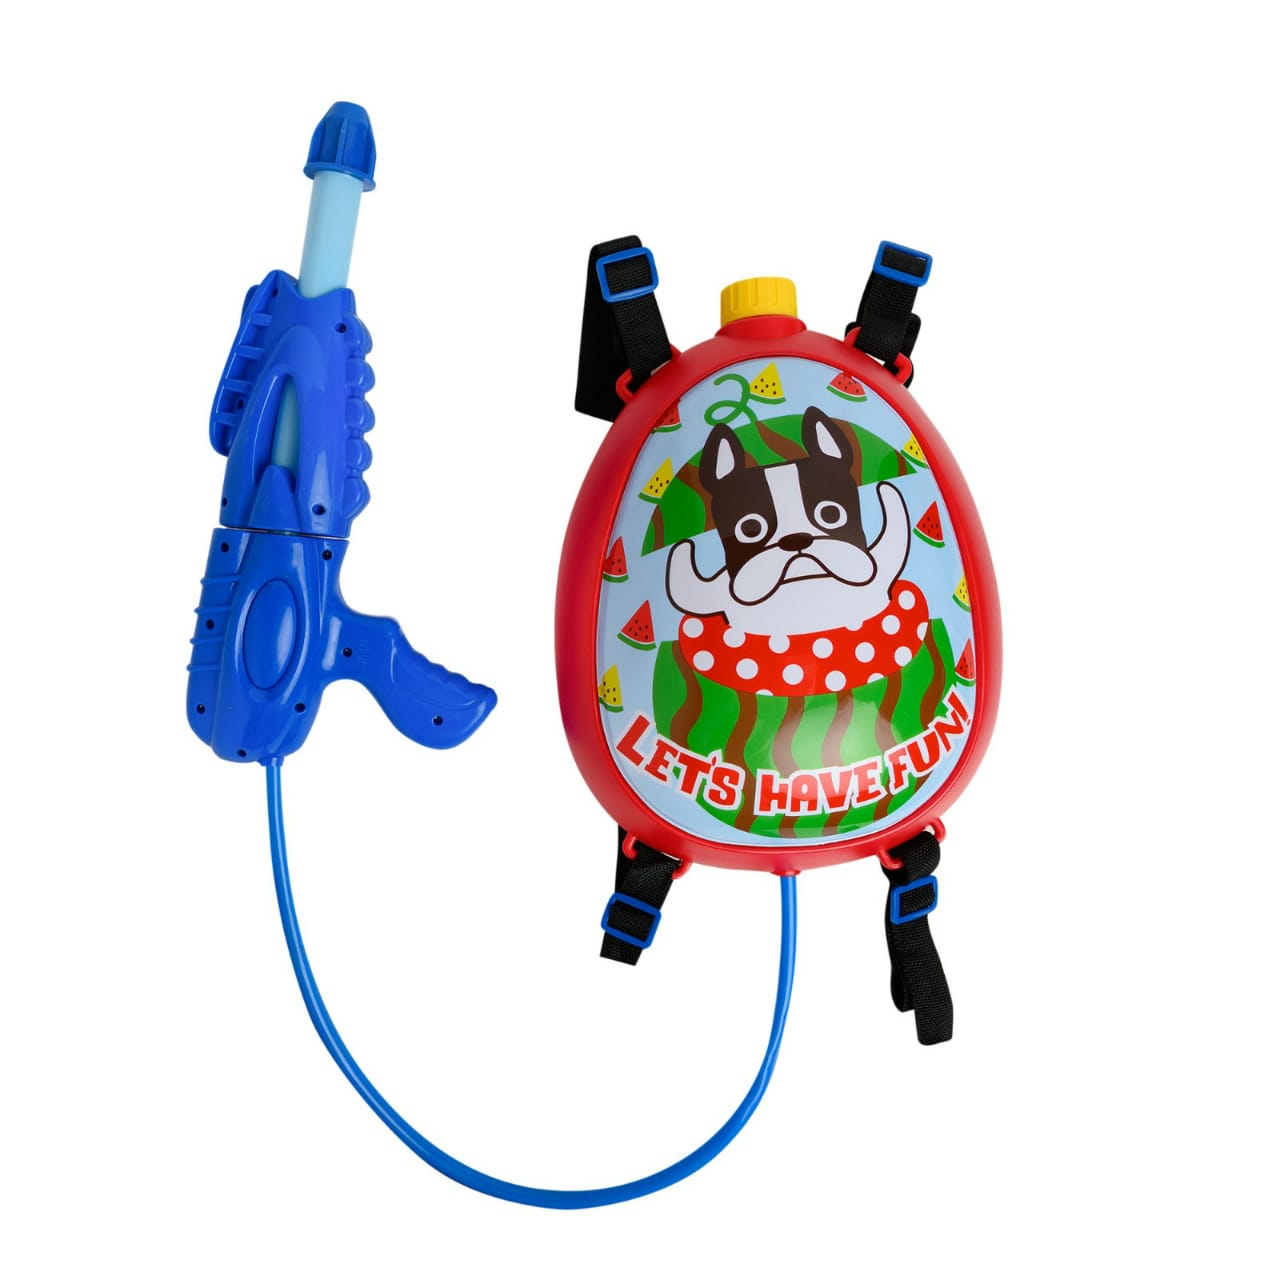 Lets Have Fun Printed Backpack Water Gun for Kids